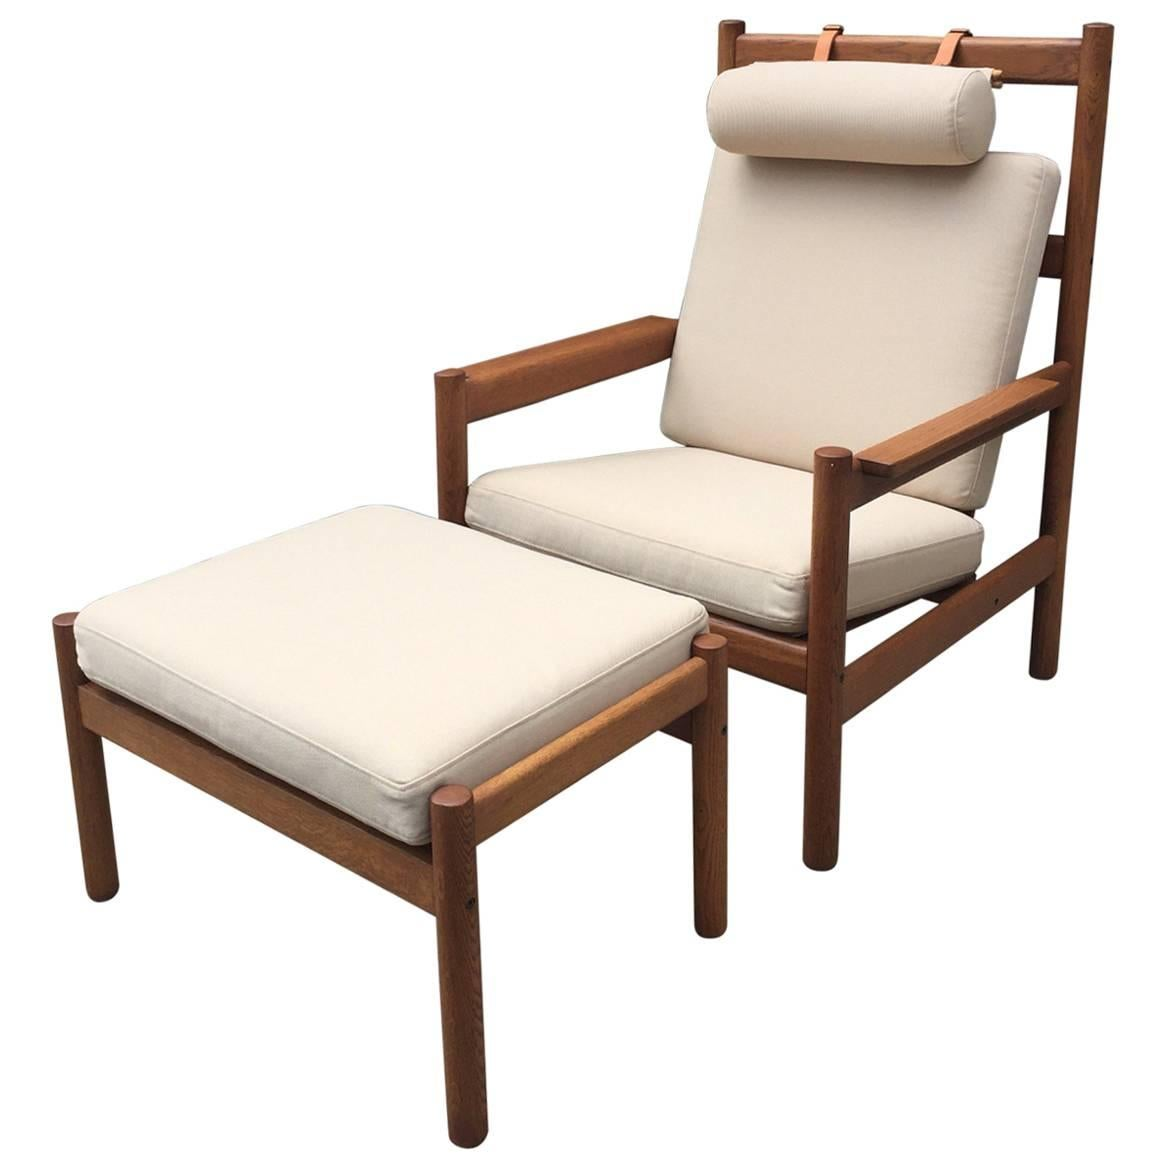 Rare Vintage Arne Norell Teak Armchair and Ottoman with Leather Straps